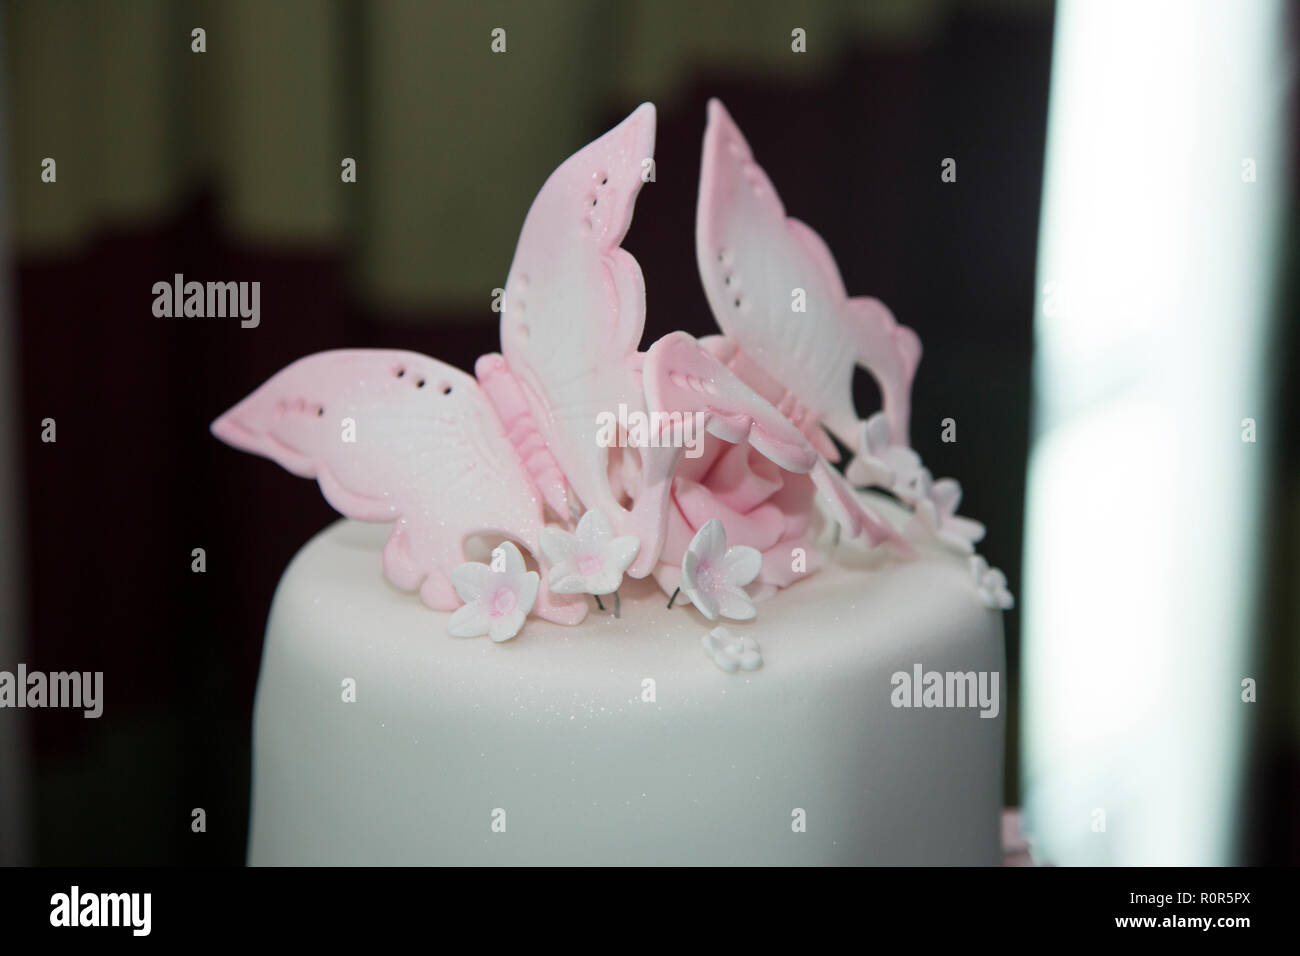 close up of white iced tiered wedding cake with pink decoration on - Stock Image